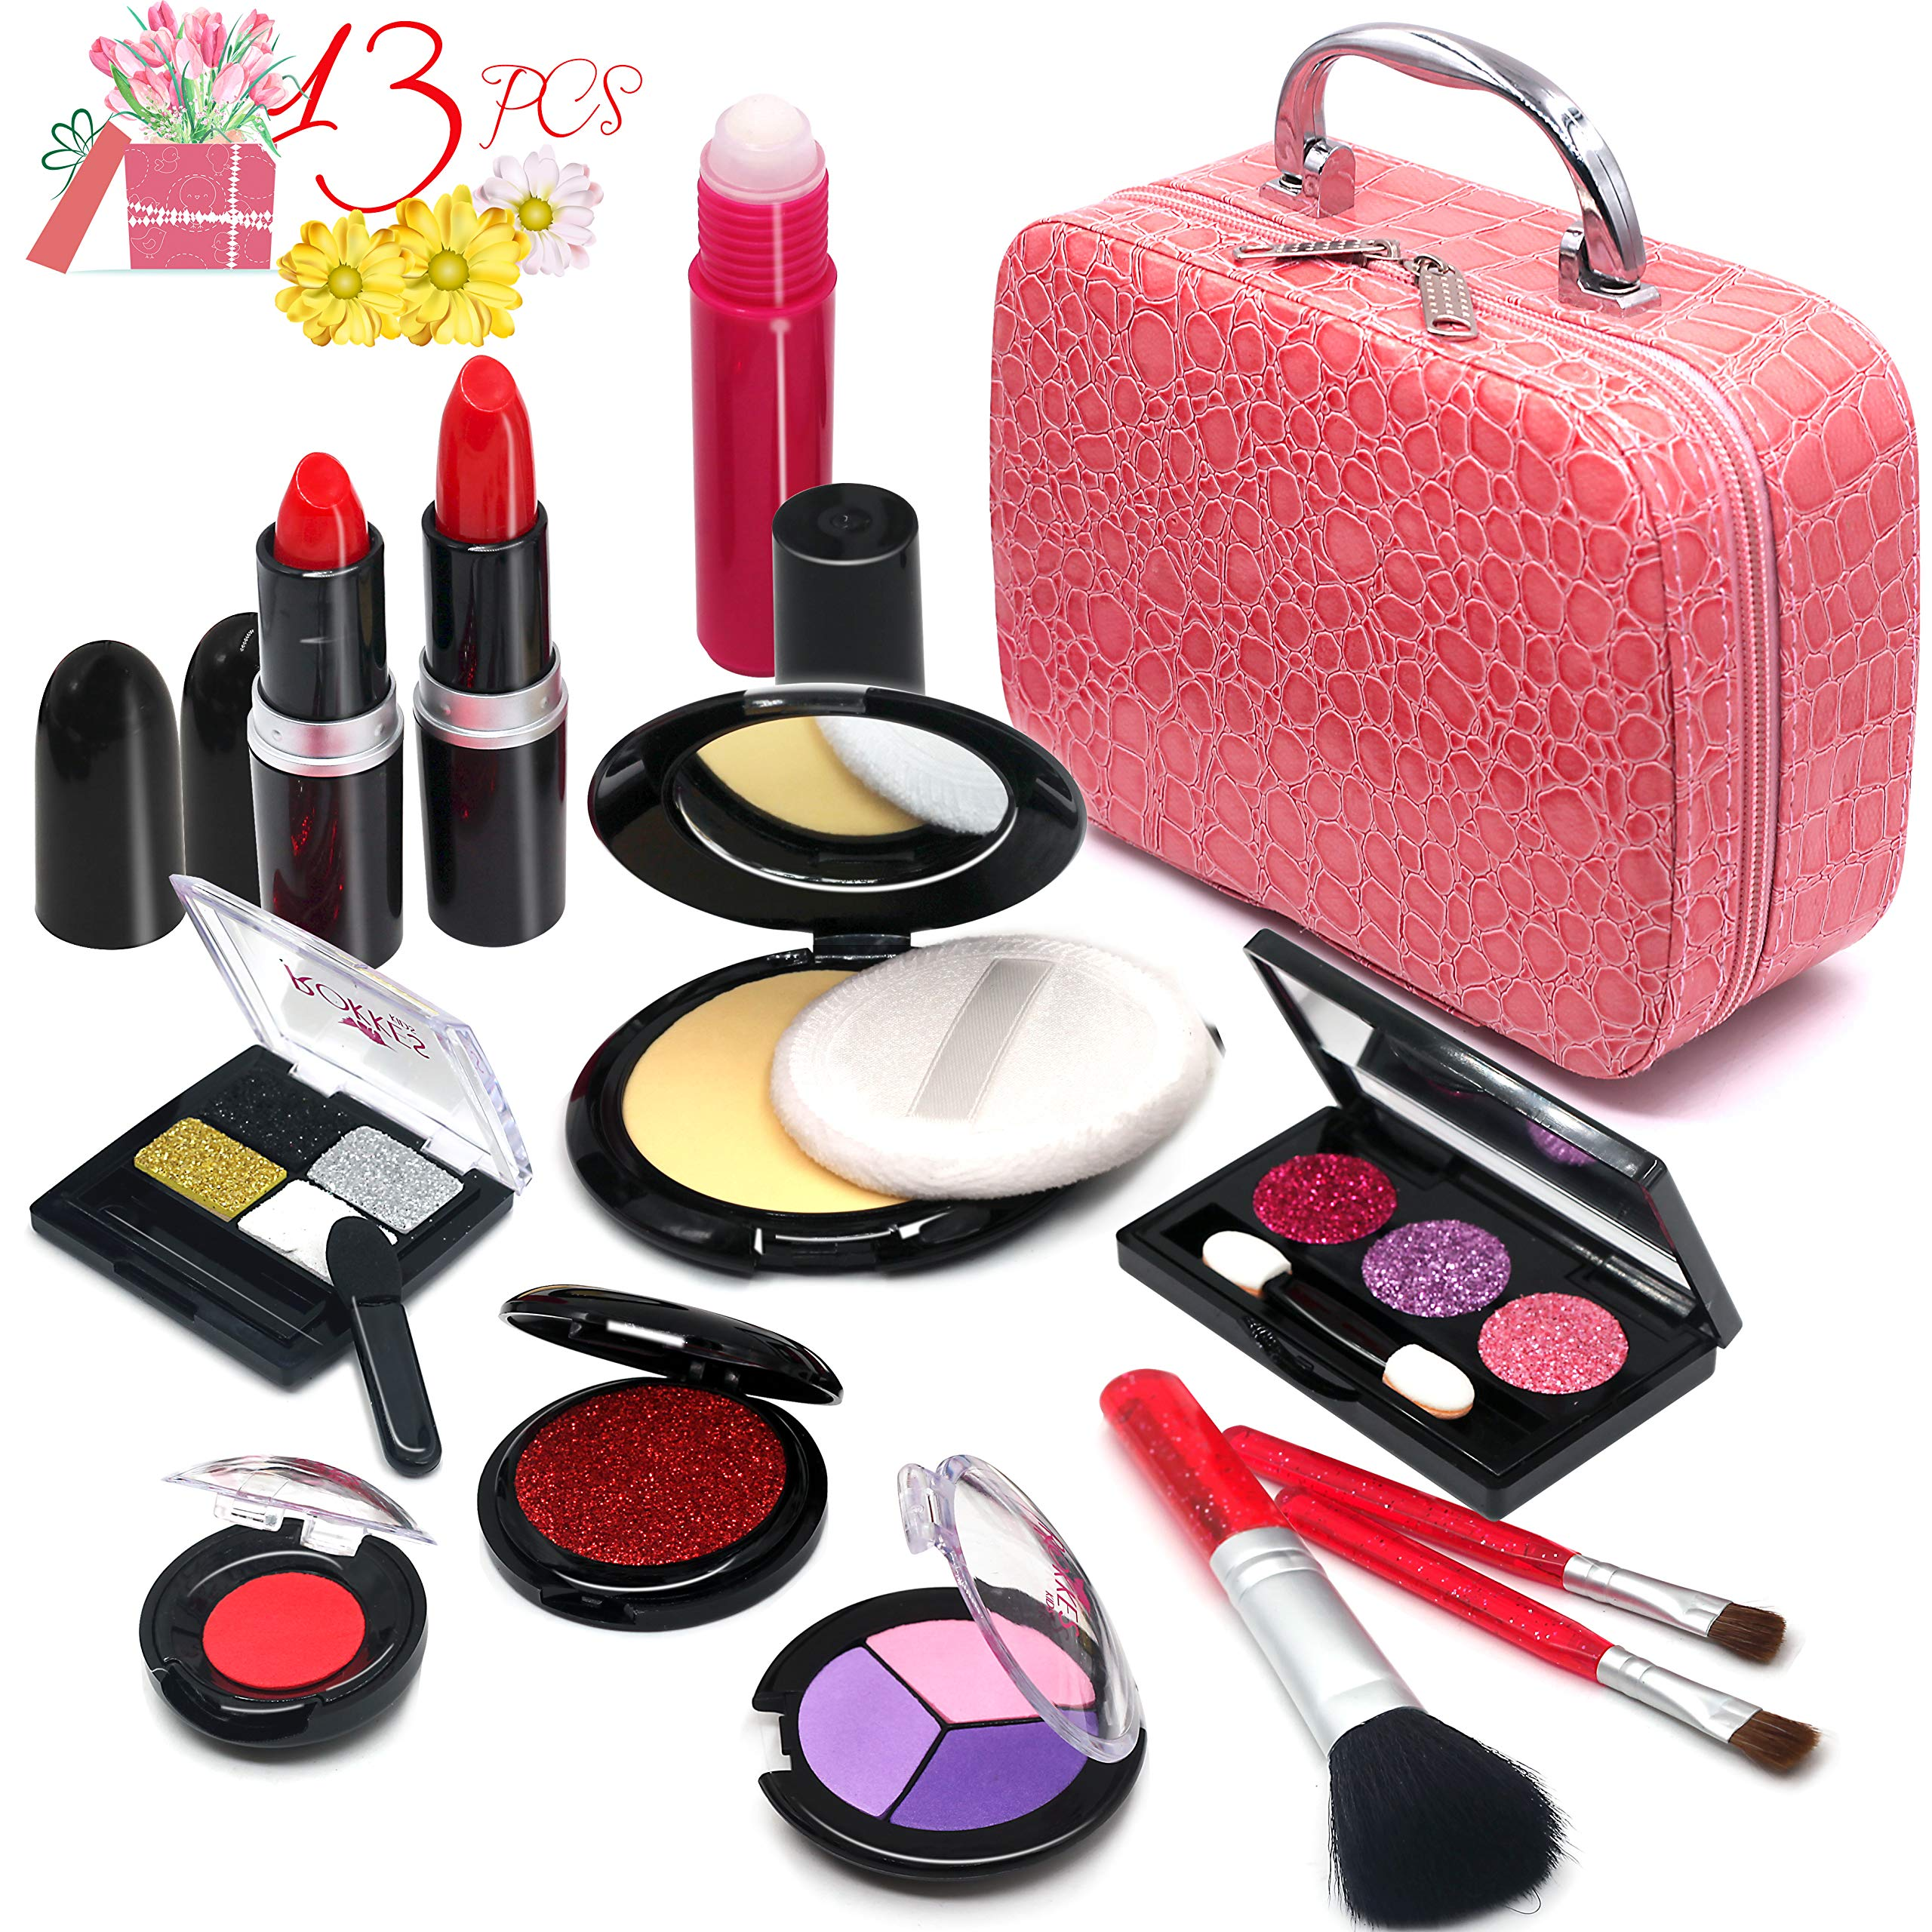 Pretend Makeup Girls Cosmetic Toys - Fake Make Up Kit Pretend Rubber Cosmetic Beauty Set for Kids Princess Play Game Christmas Birthday Gifts Toys for 2 3 4 5 6 Years Old Girls Gift by For Ideahome